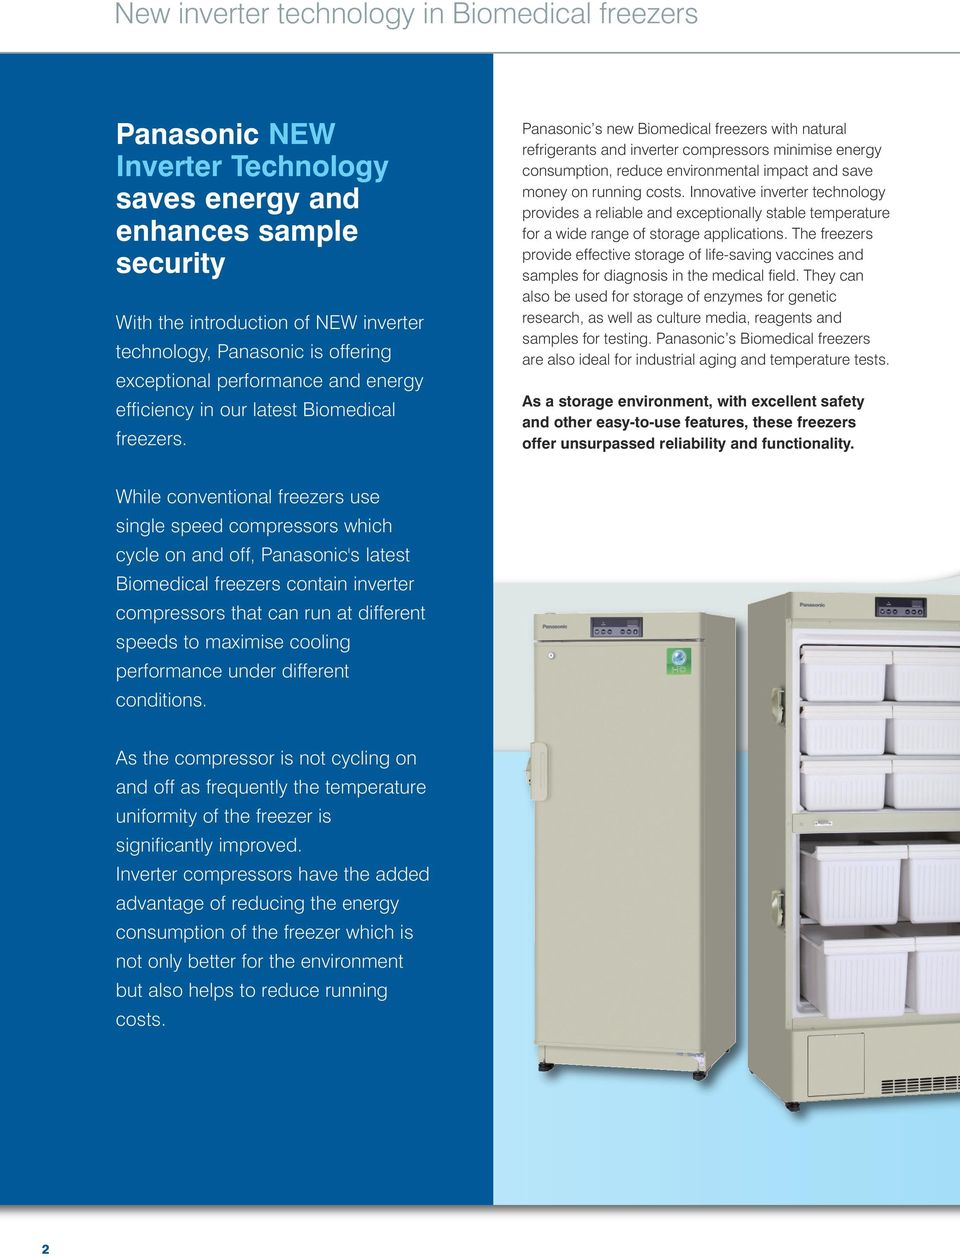 Panasonic s new Biomedical freezers with natural refrigerants and inverter compressors minimise energy consumption, reduce environmental impact and save money on running costs.